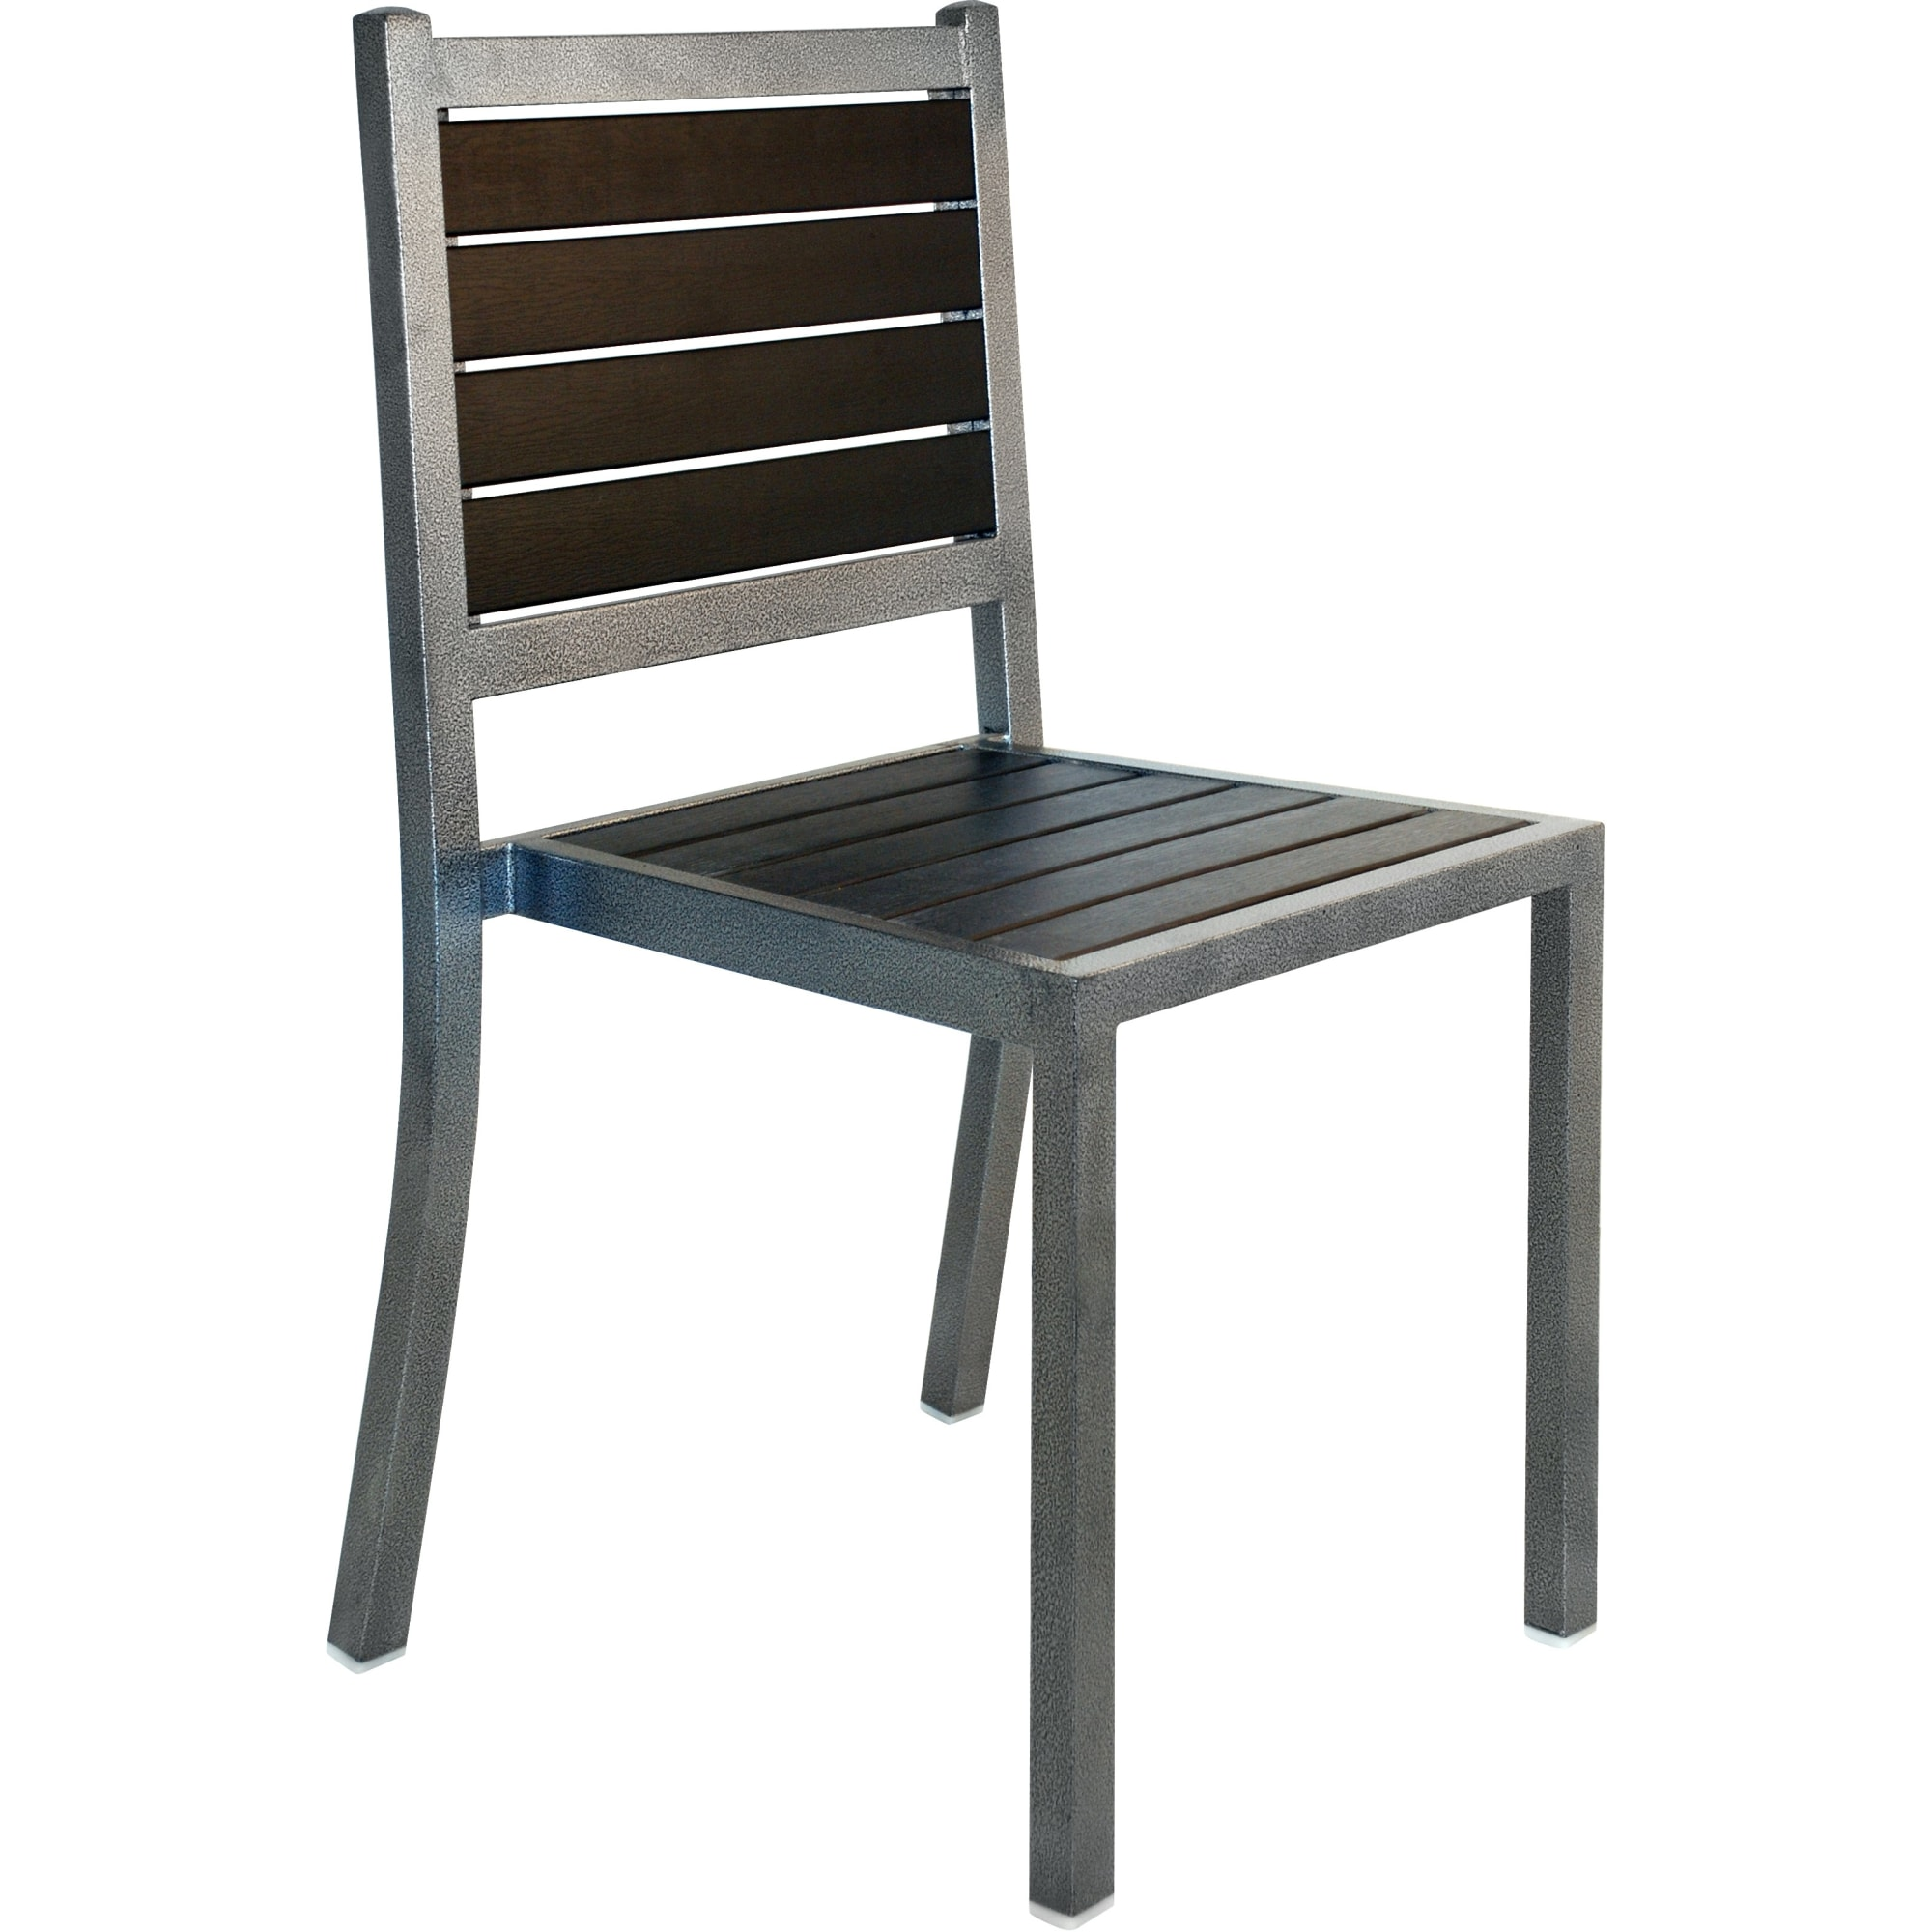 Plastic-Teak Metal Patio Chair in Silver Vein Finish